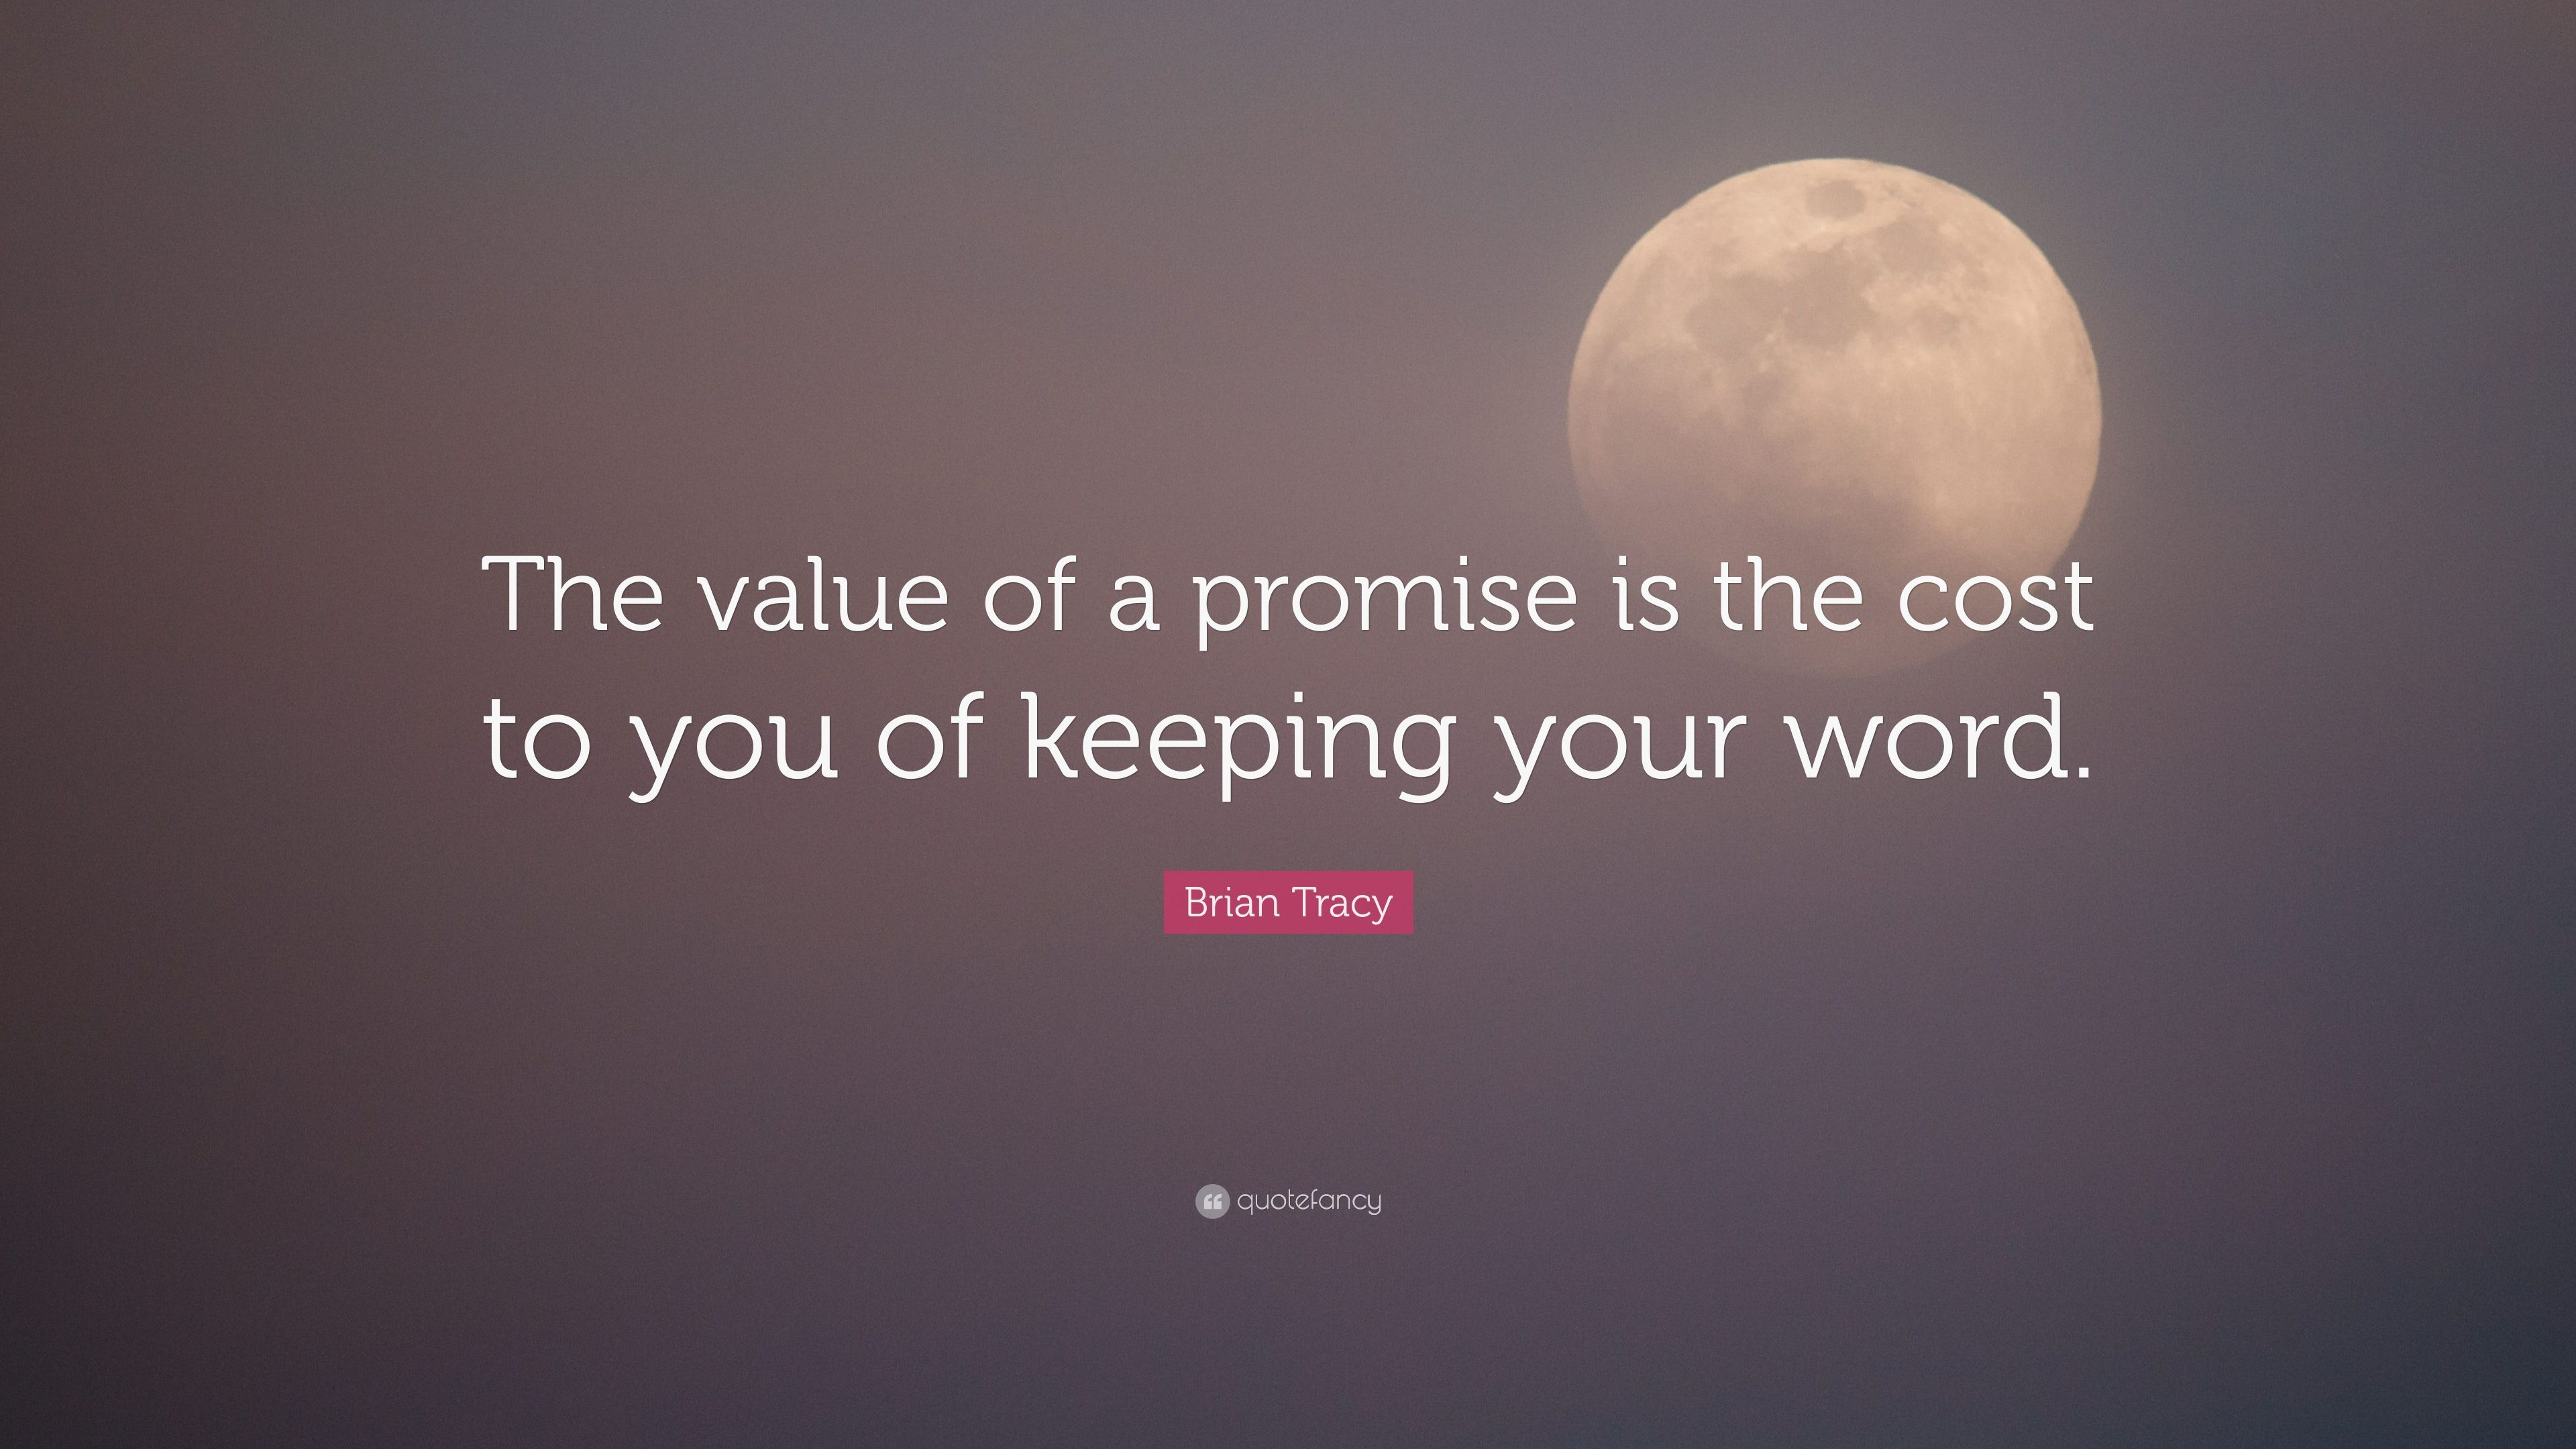 Brian Tracy Quote The Value Of A Promise Is The Cost To You Of